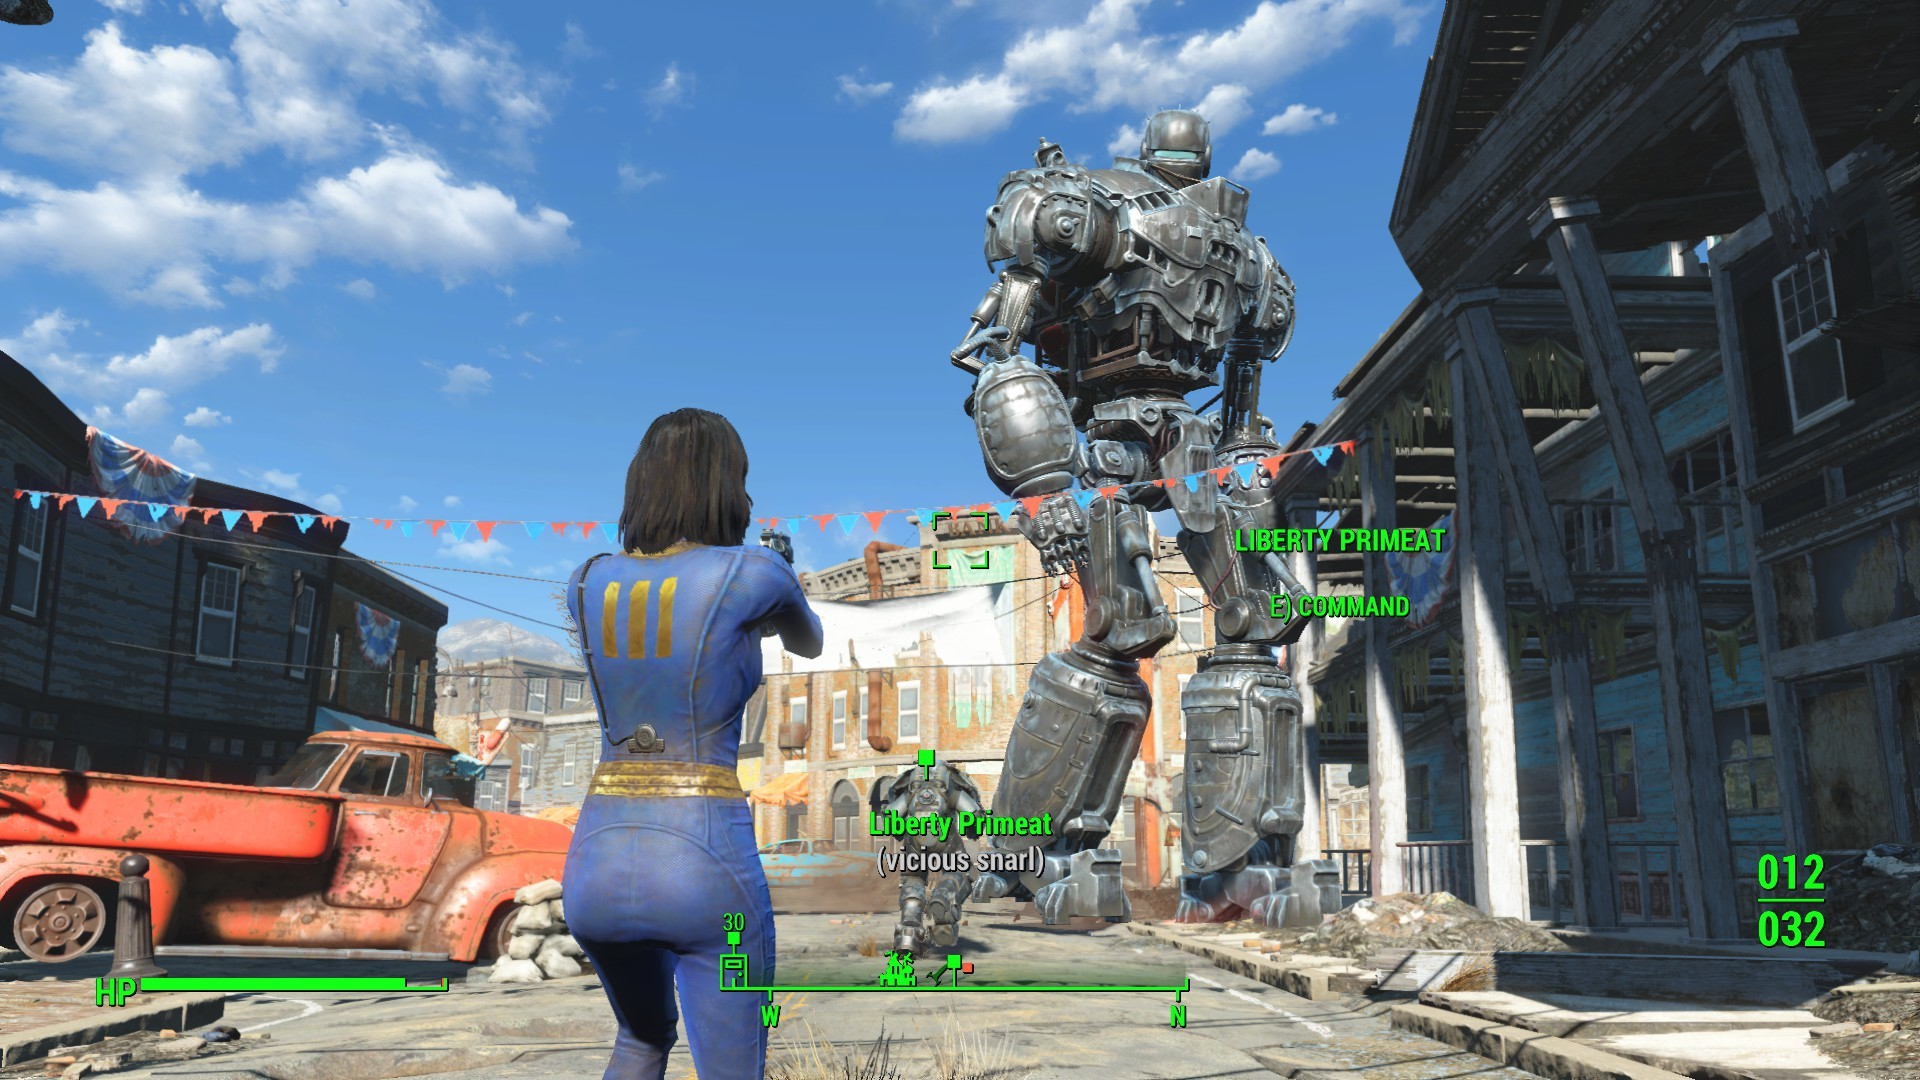 Res: 1920x1080, Liberty Primeat – DESTROY ALL RED CHINESE INVADER for FO4